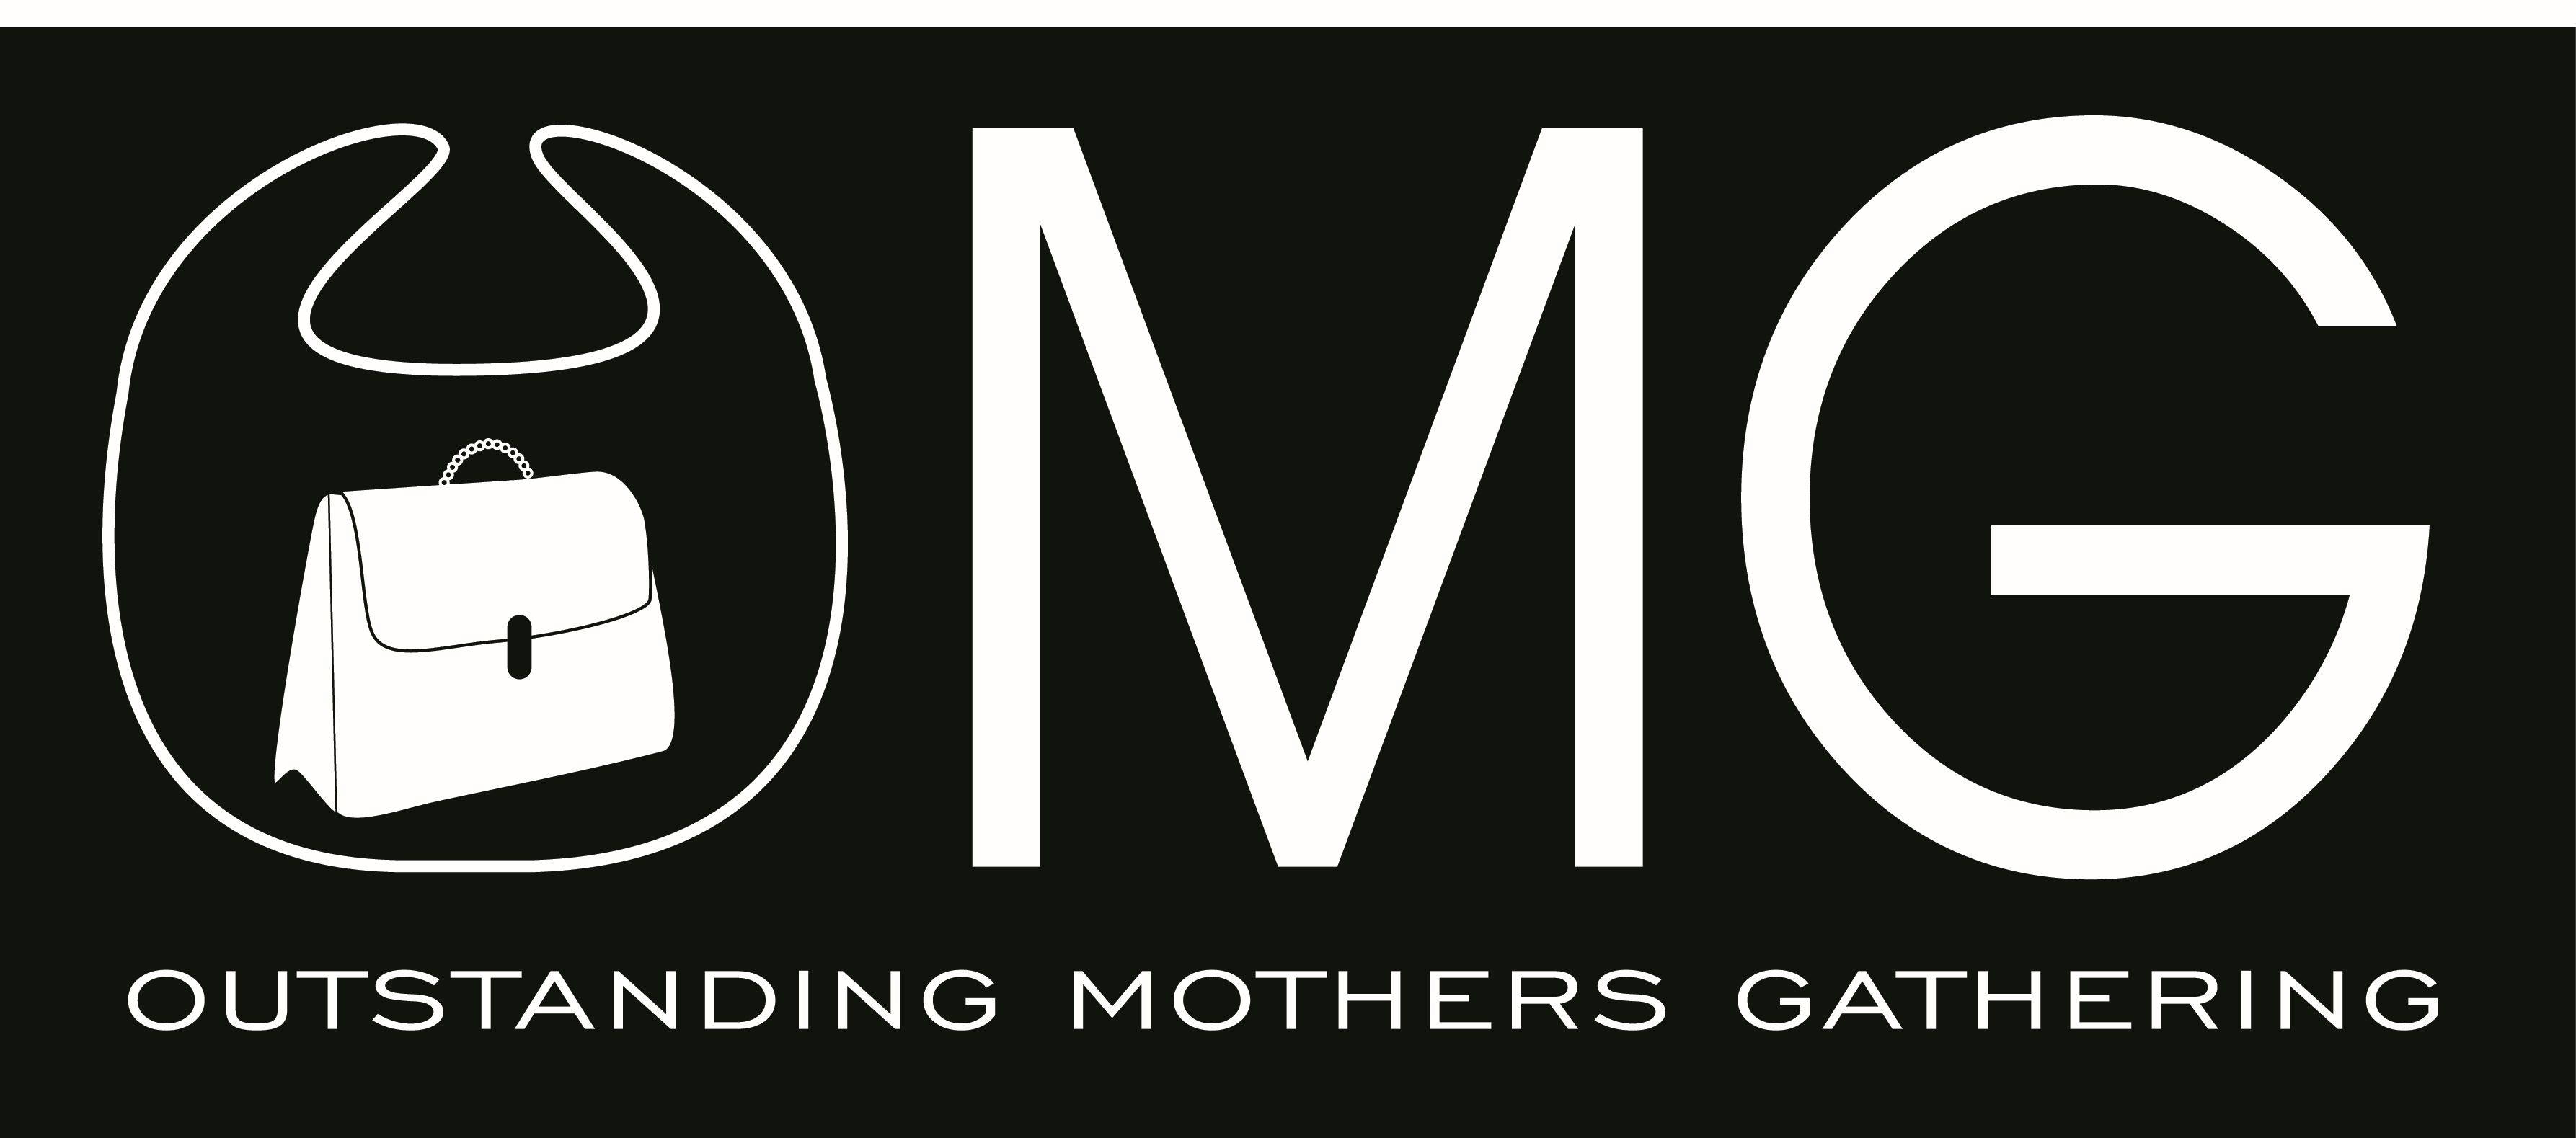 Outstanding Mothers' Gathering, LLC logo